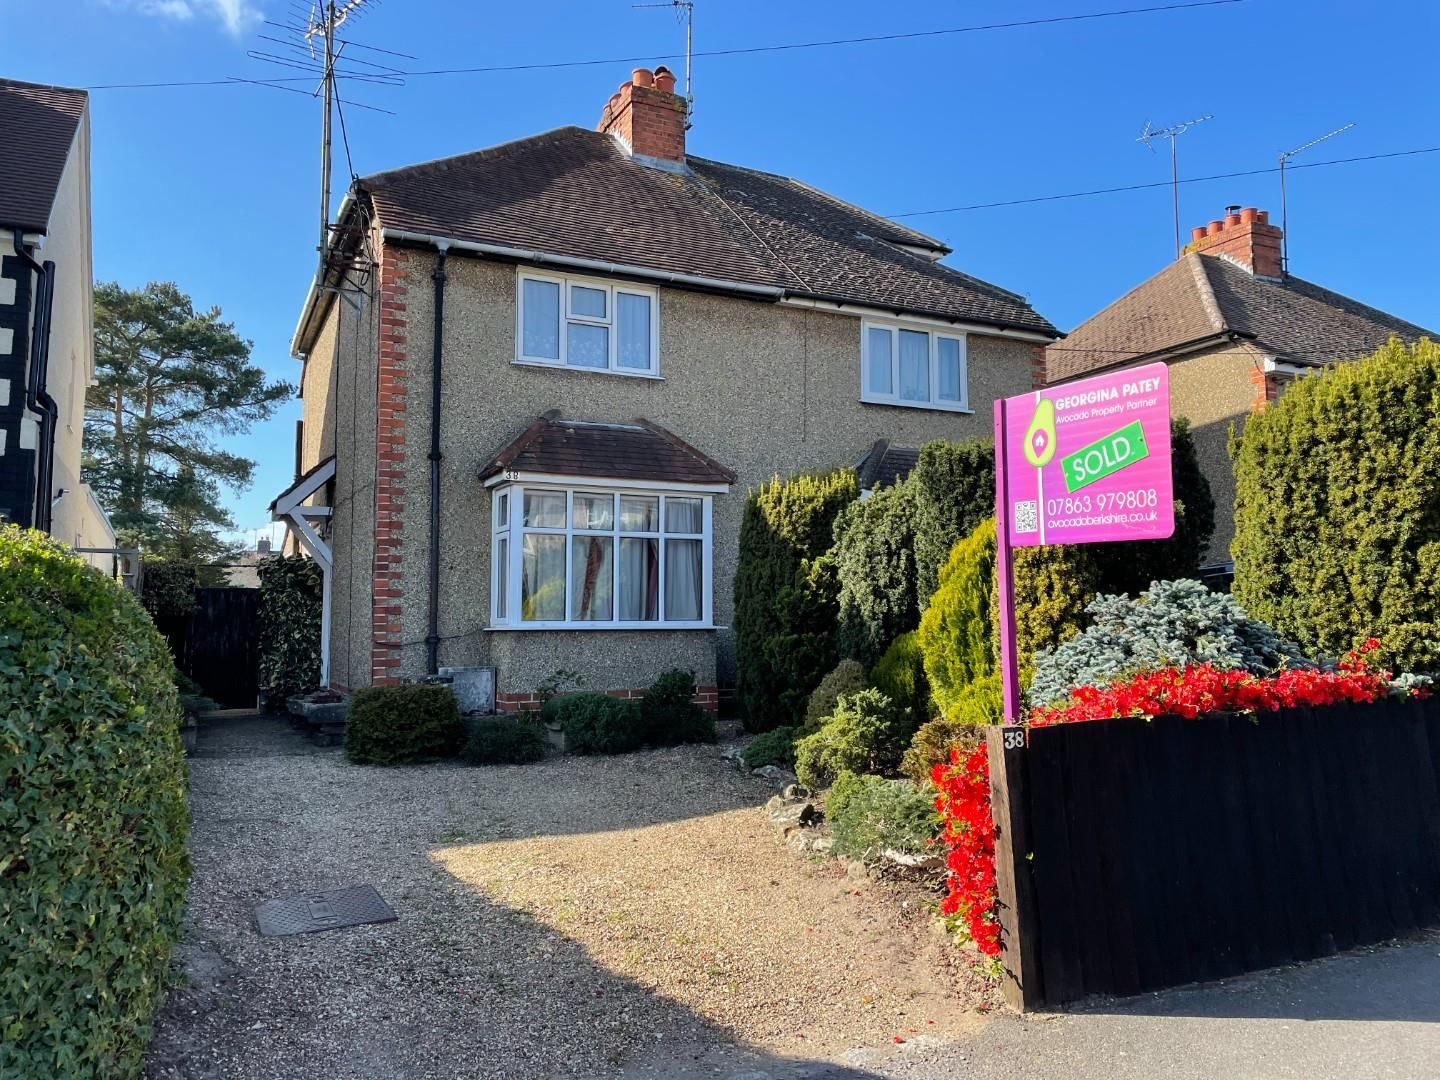 2 bed house for sale in Earley, RG6